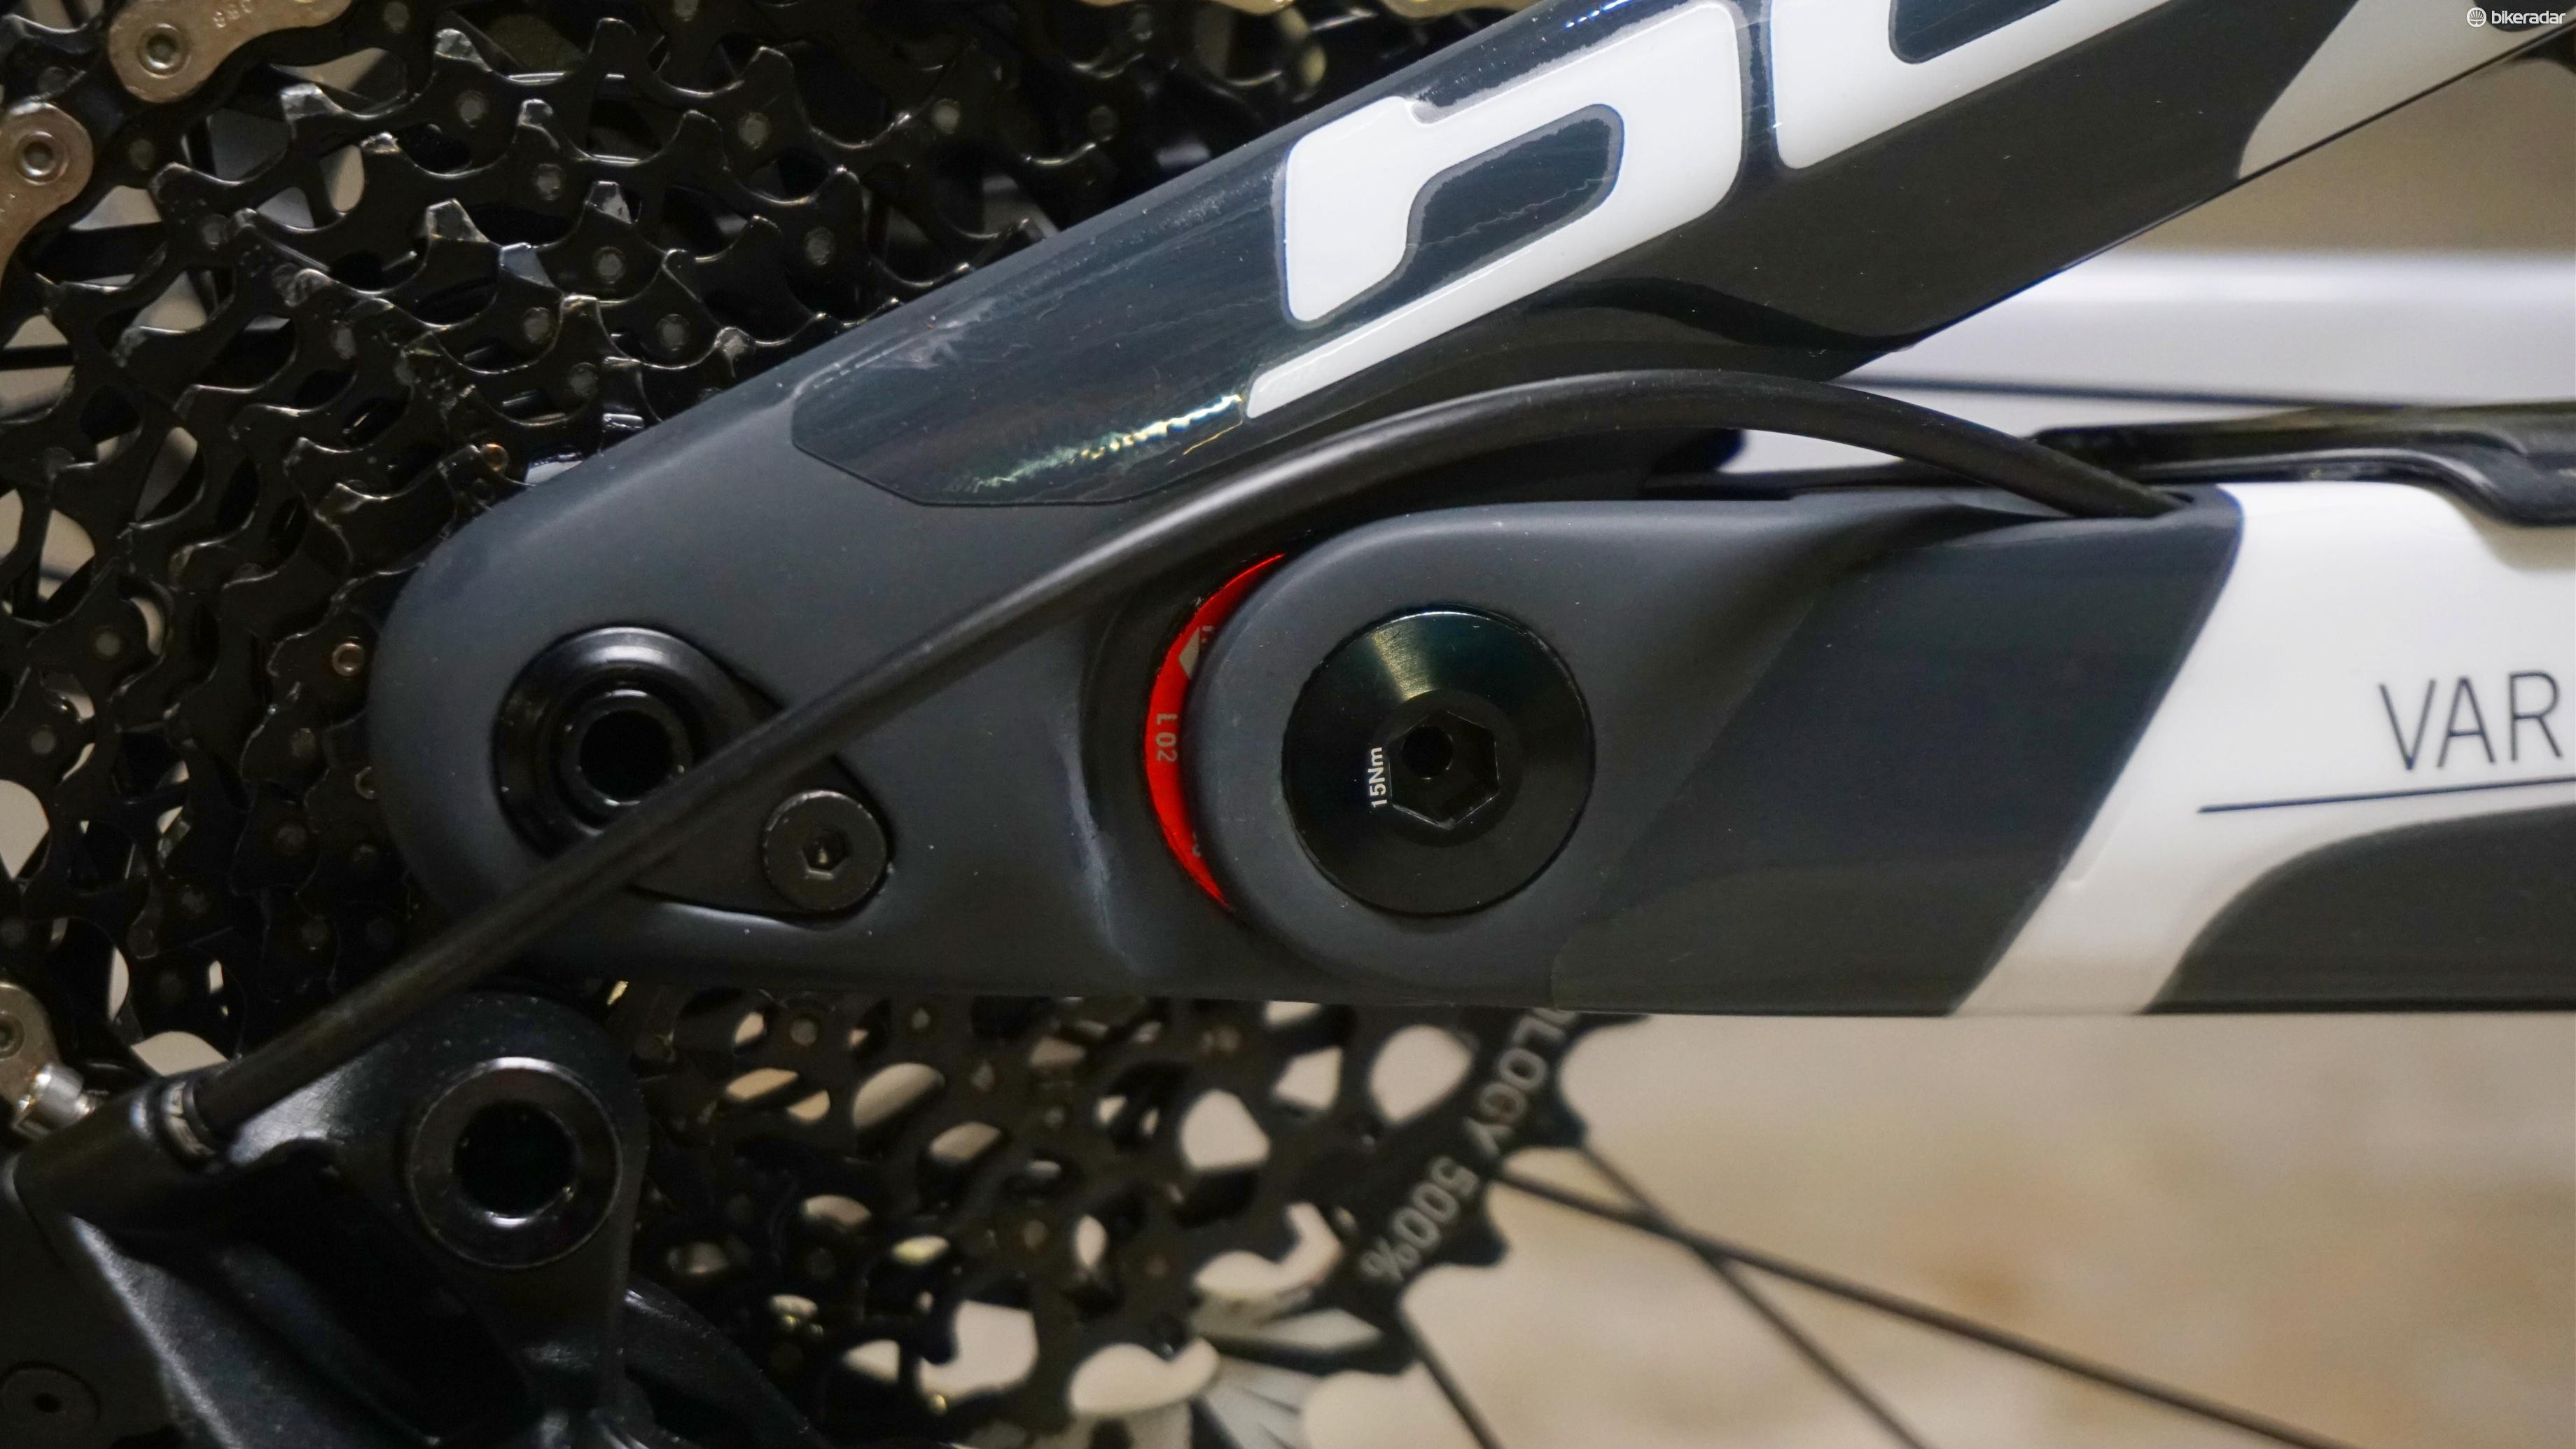 ... the geometry can be tweaked with reversable flip chips in the chainstay pivot and headset